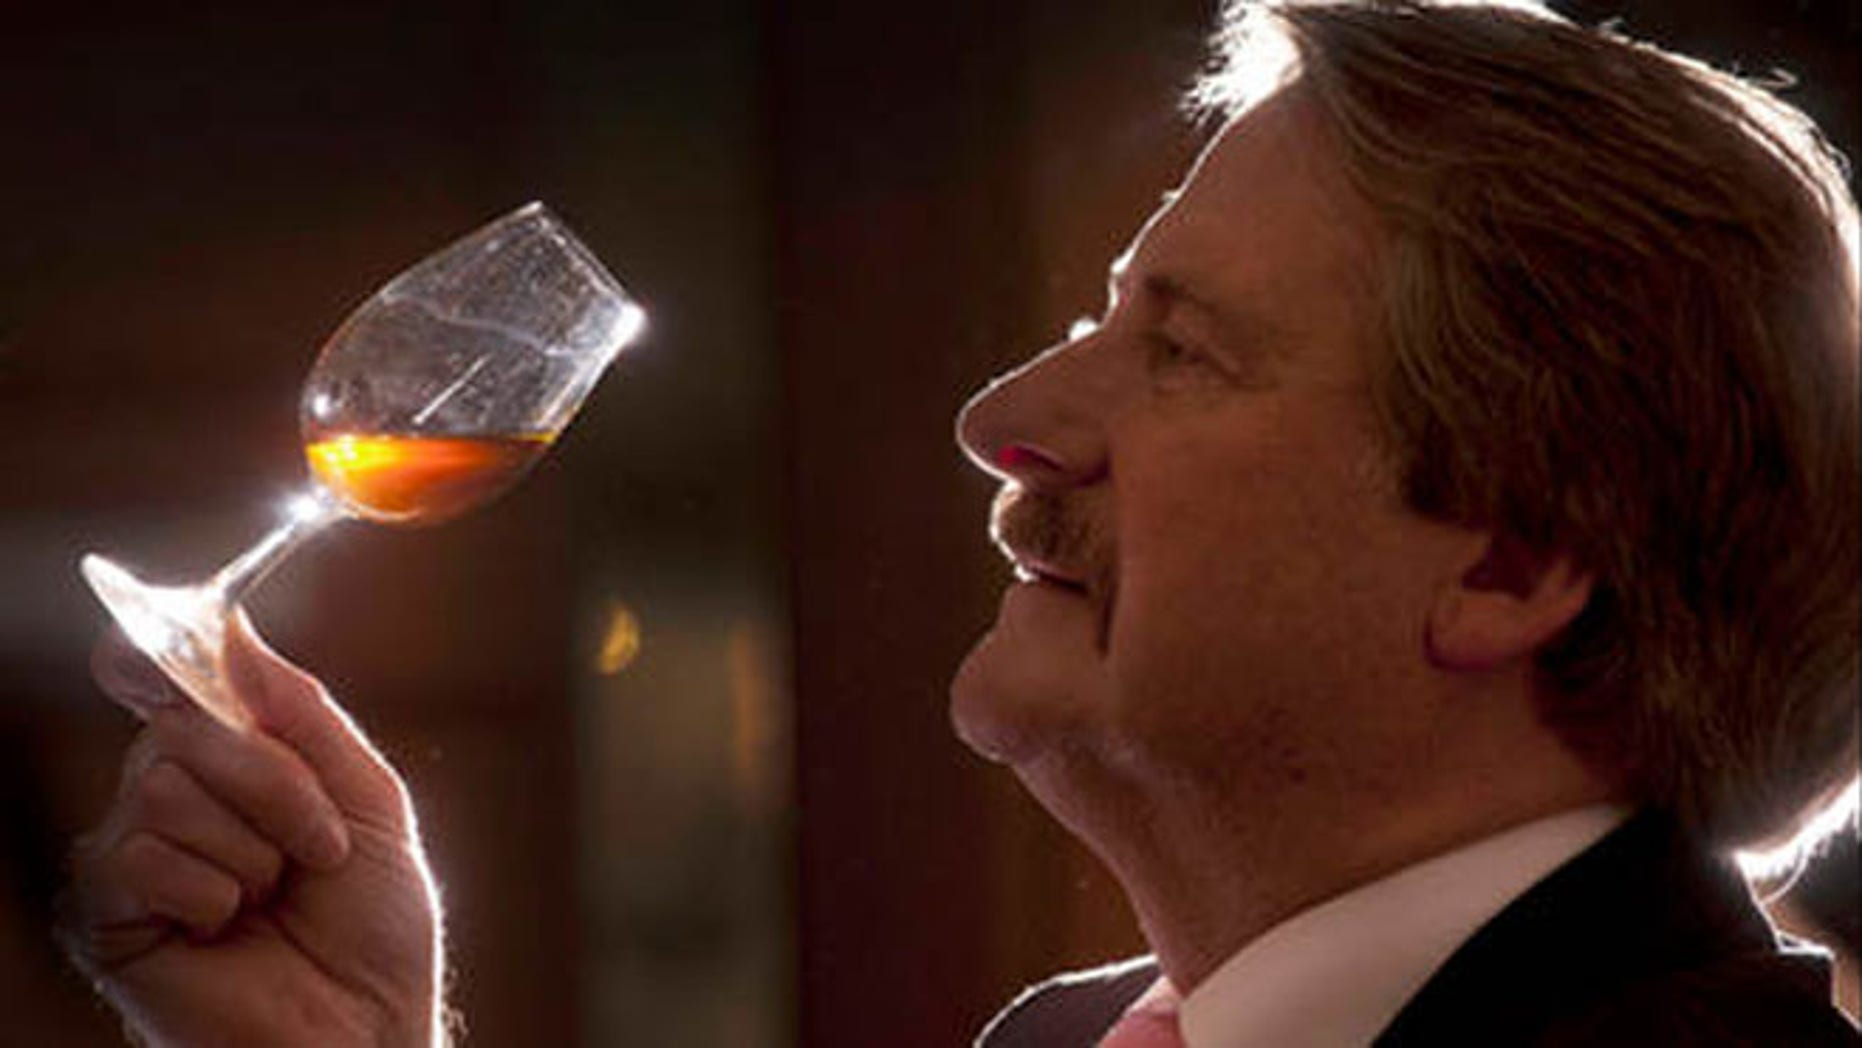 Richard Paterson is one of the world's master blenders of scotch whisky.